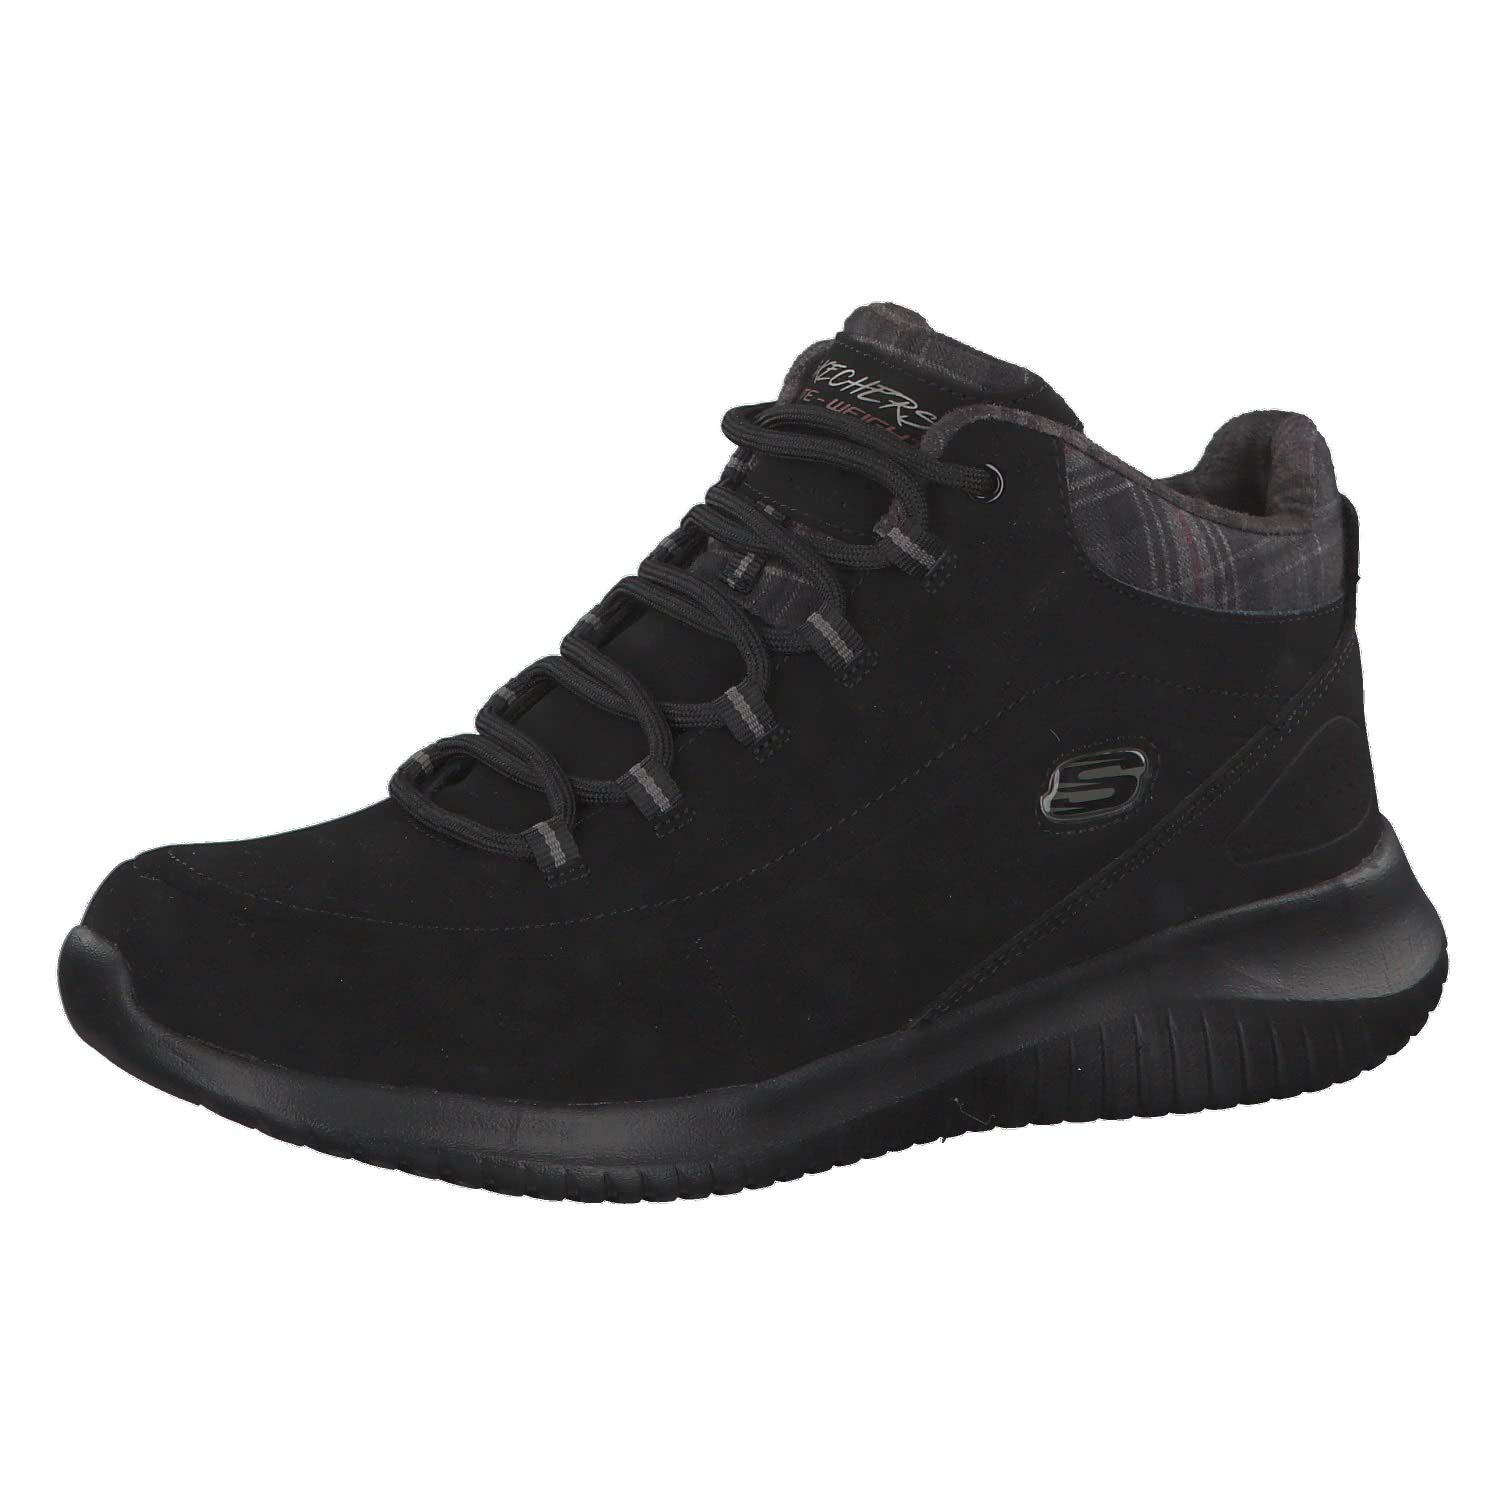 TALLA 35 EU. Skechers On-The-go-Bundle Up, Botines para Mujer